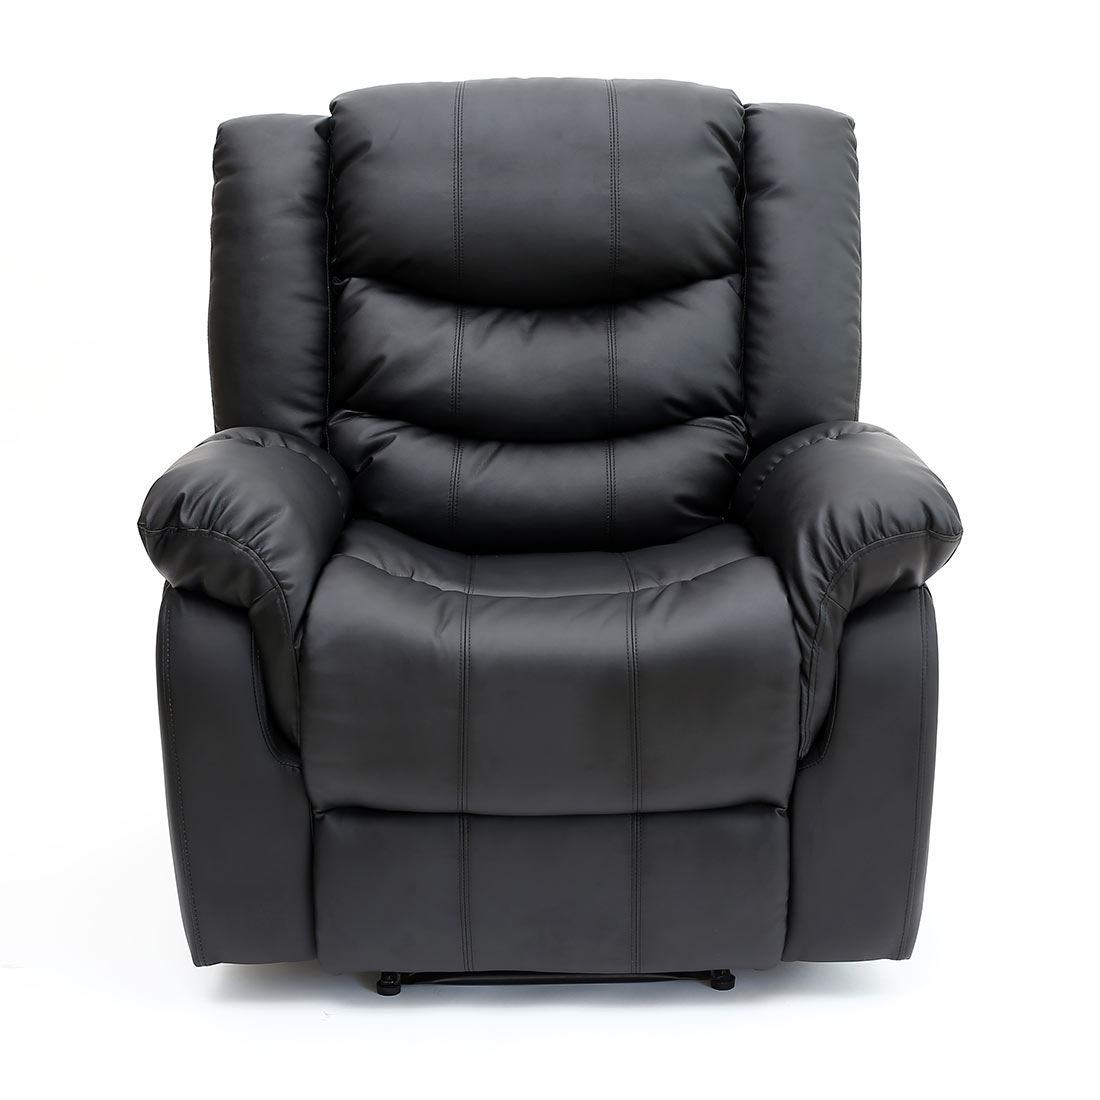 gaming lounge chair black circle target seattle leather recliner armchair sofa home